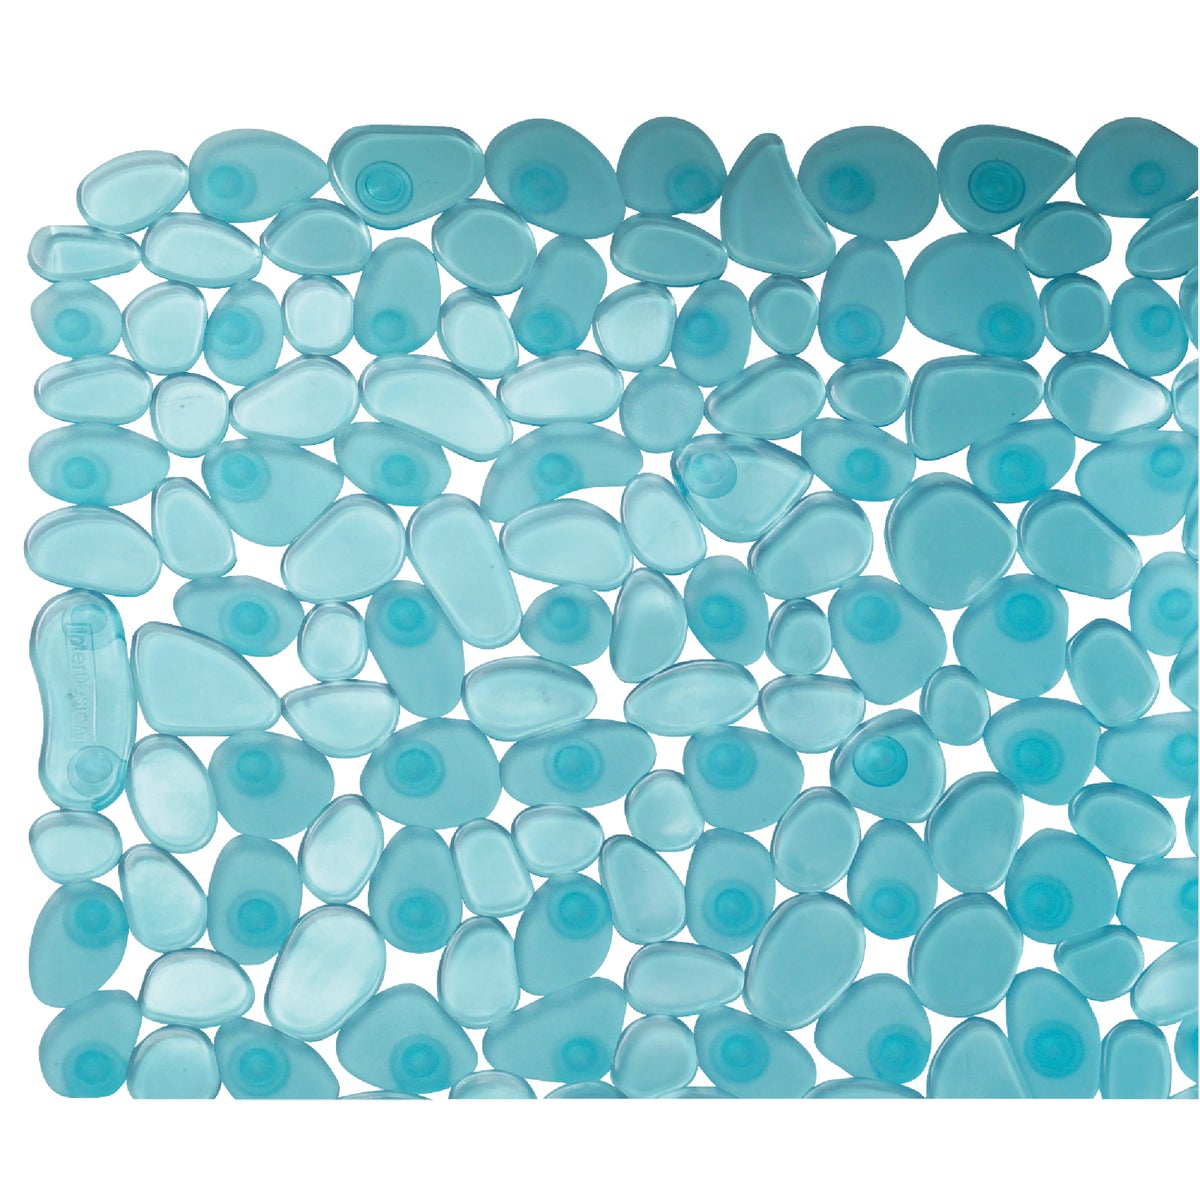 BLUE PEBBLZ BATH MAT